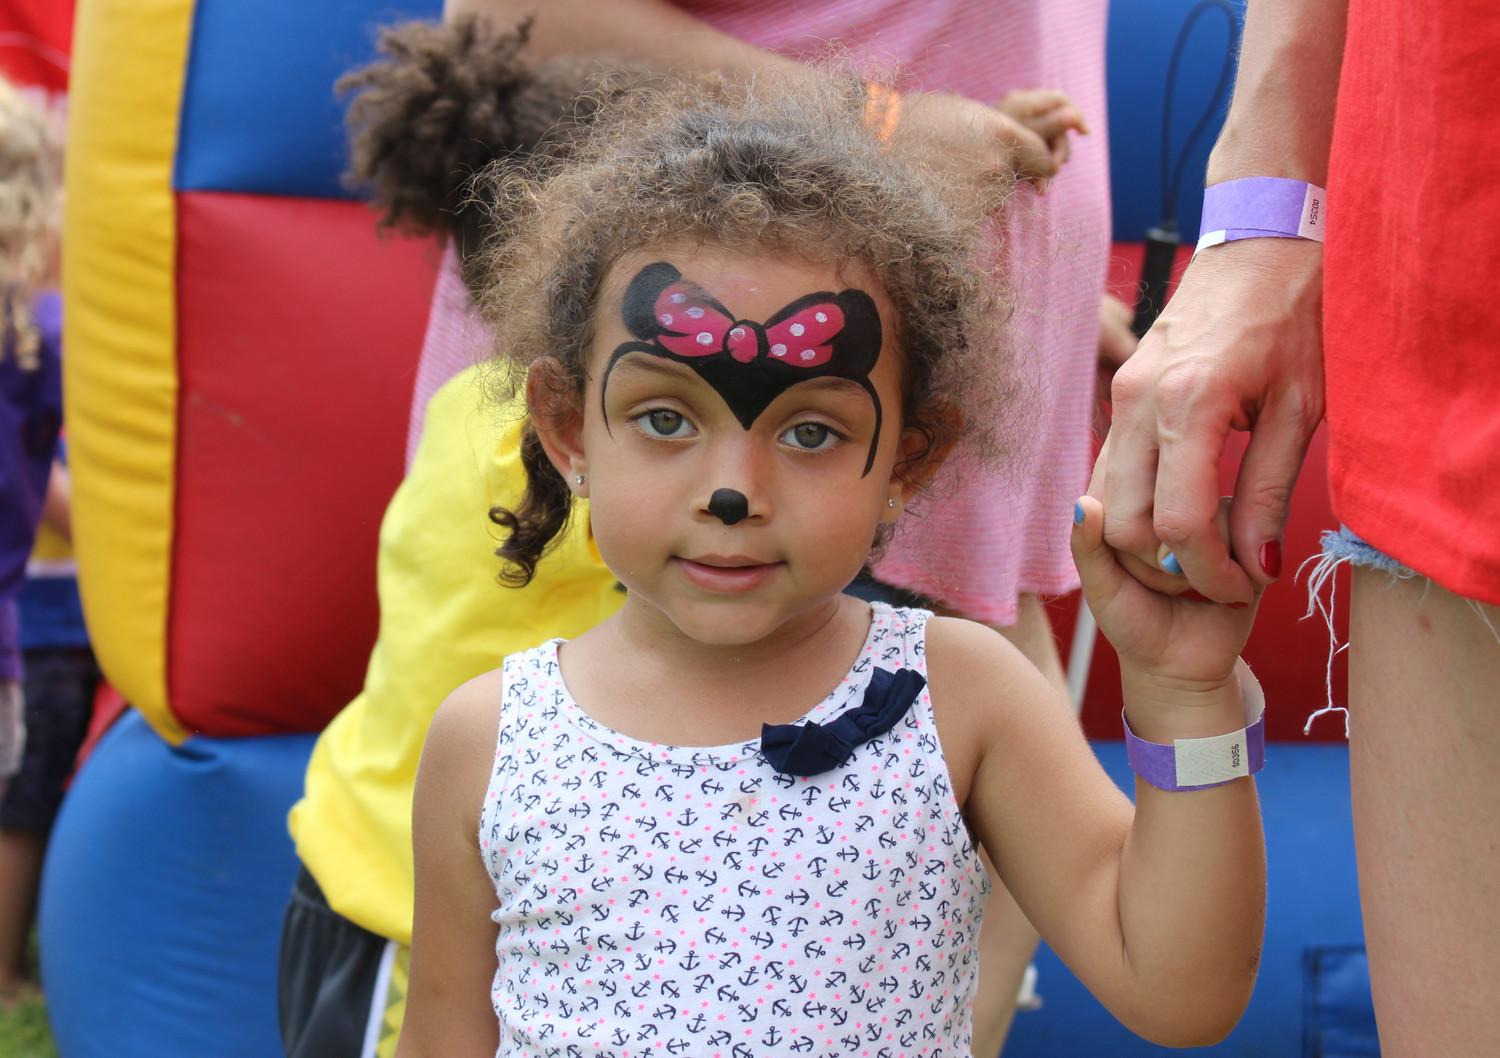 Callie Whitehall, 2, enjoyed the children's activities at Hope Day while her mom Jillian Meagher volunteered at the charitable event.